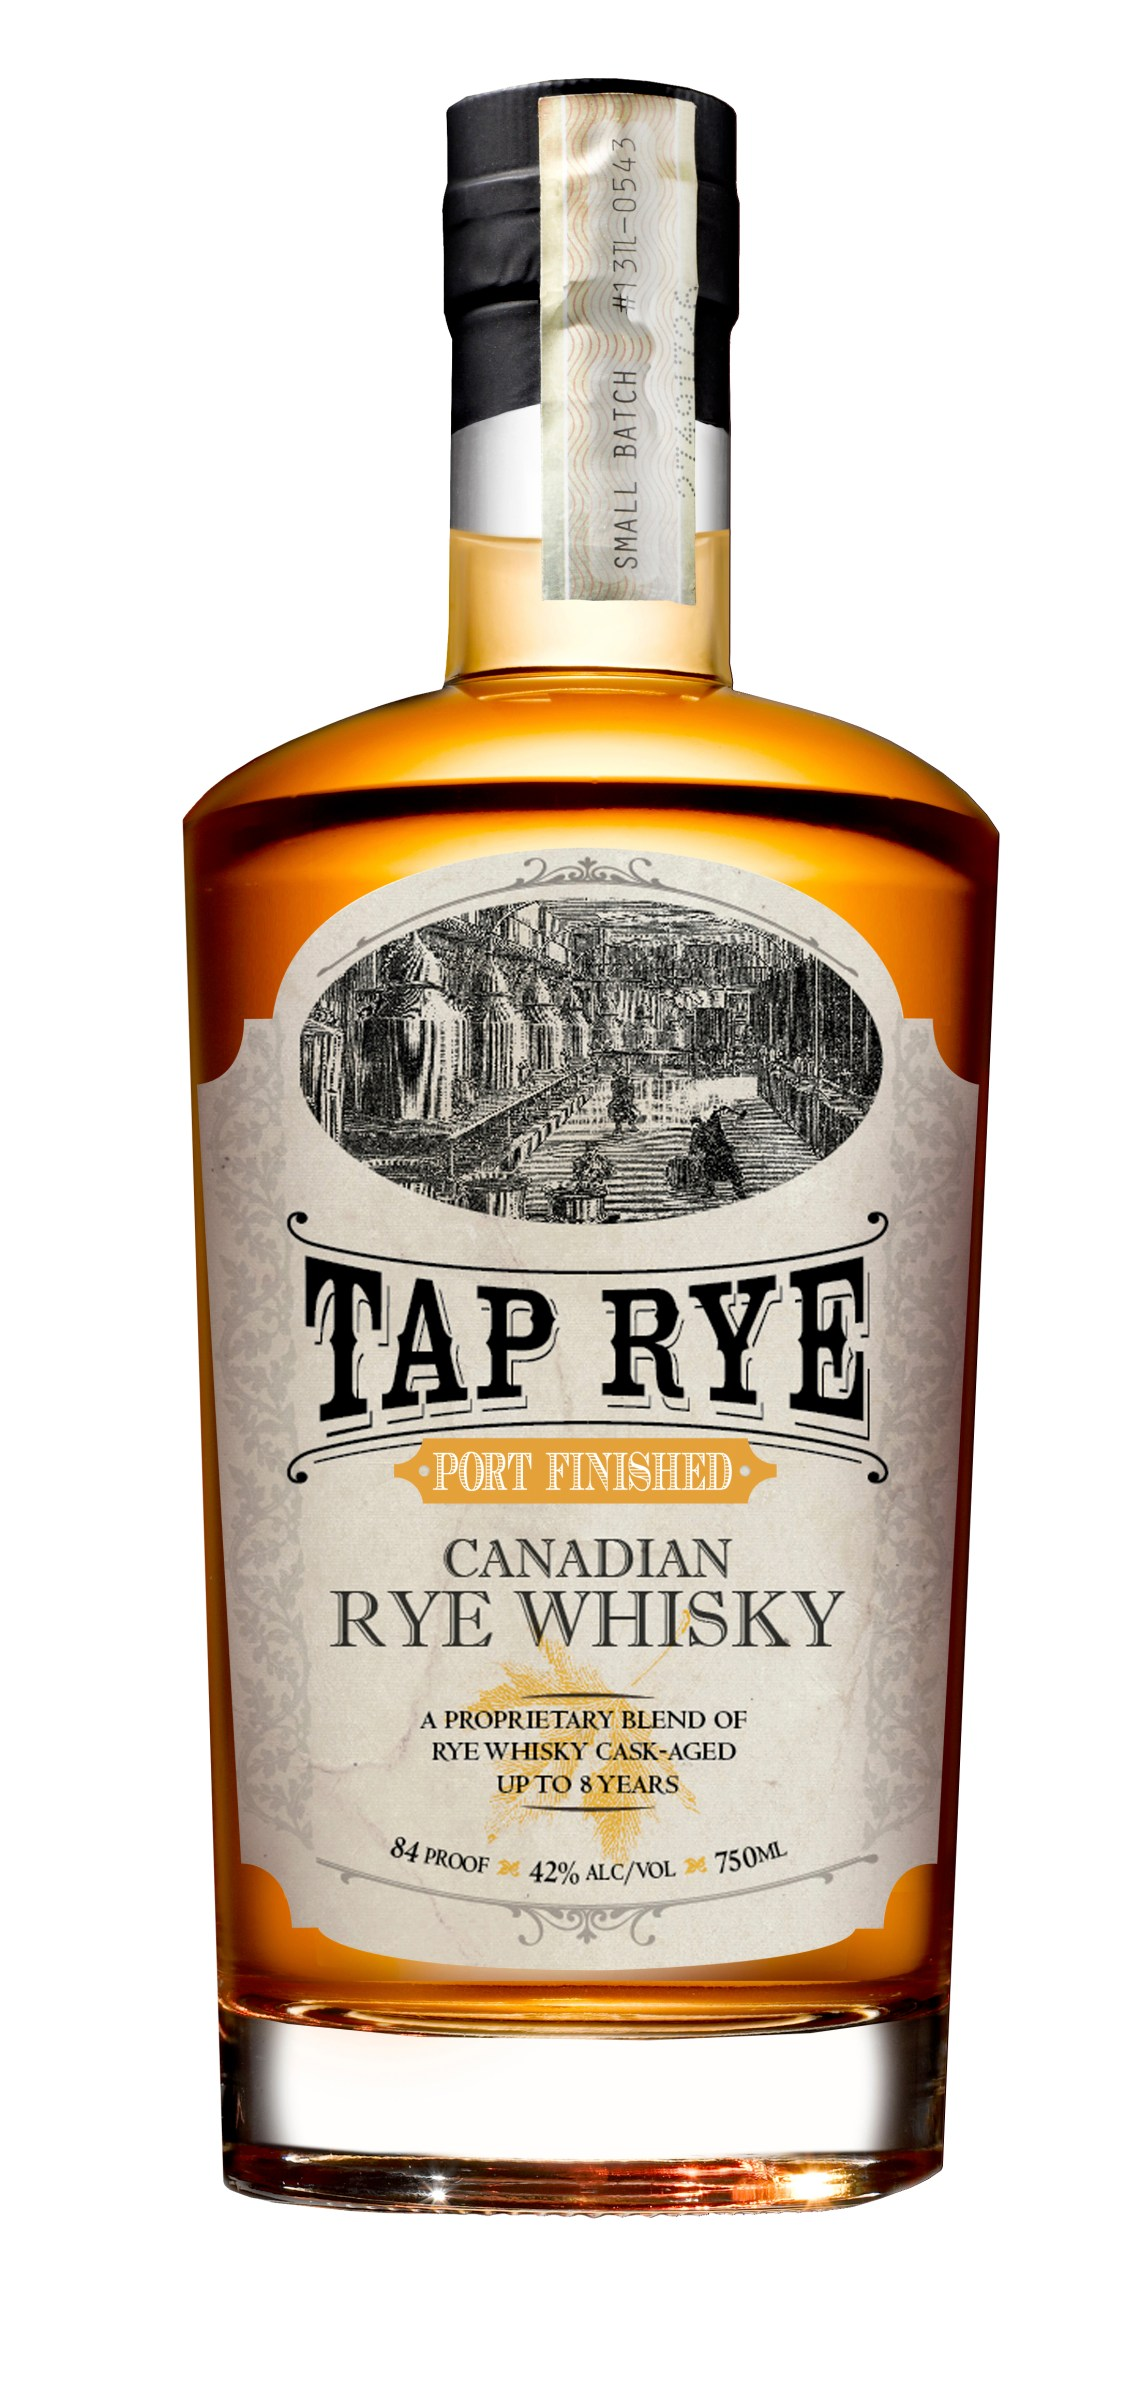 Tap Rye Port Finished Canadian Rye Whisky